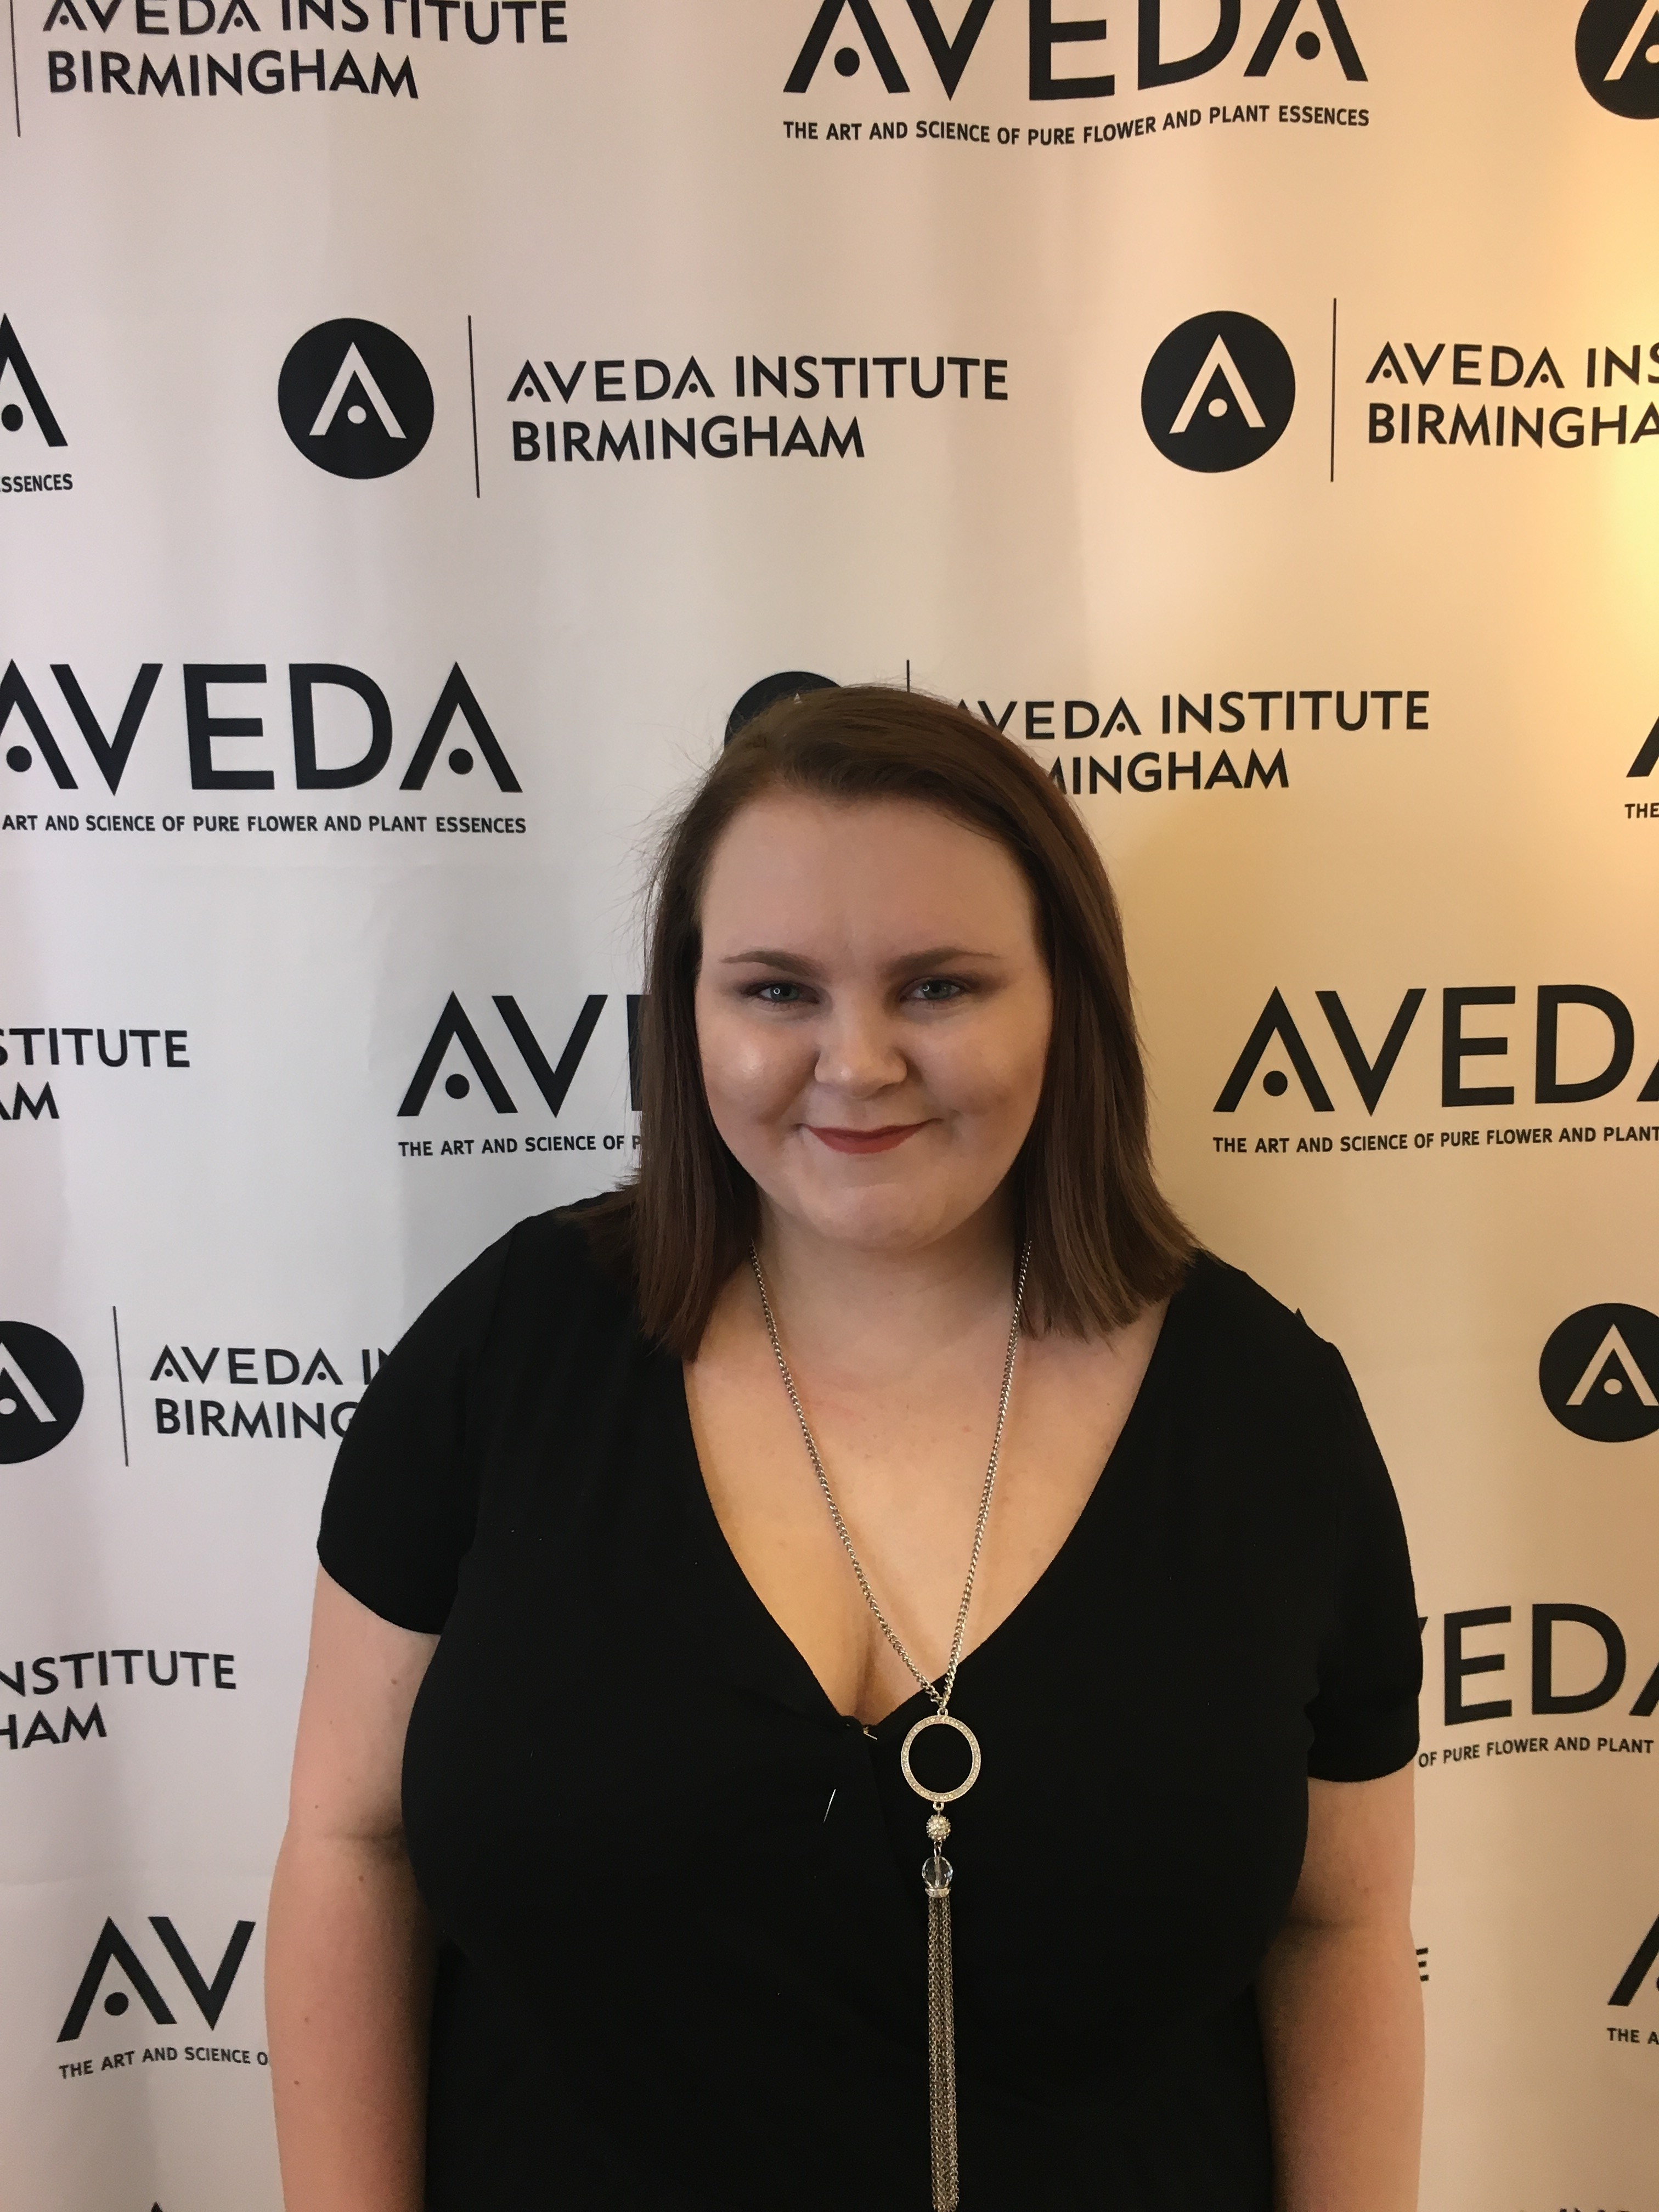 Aveda Esthiology Student